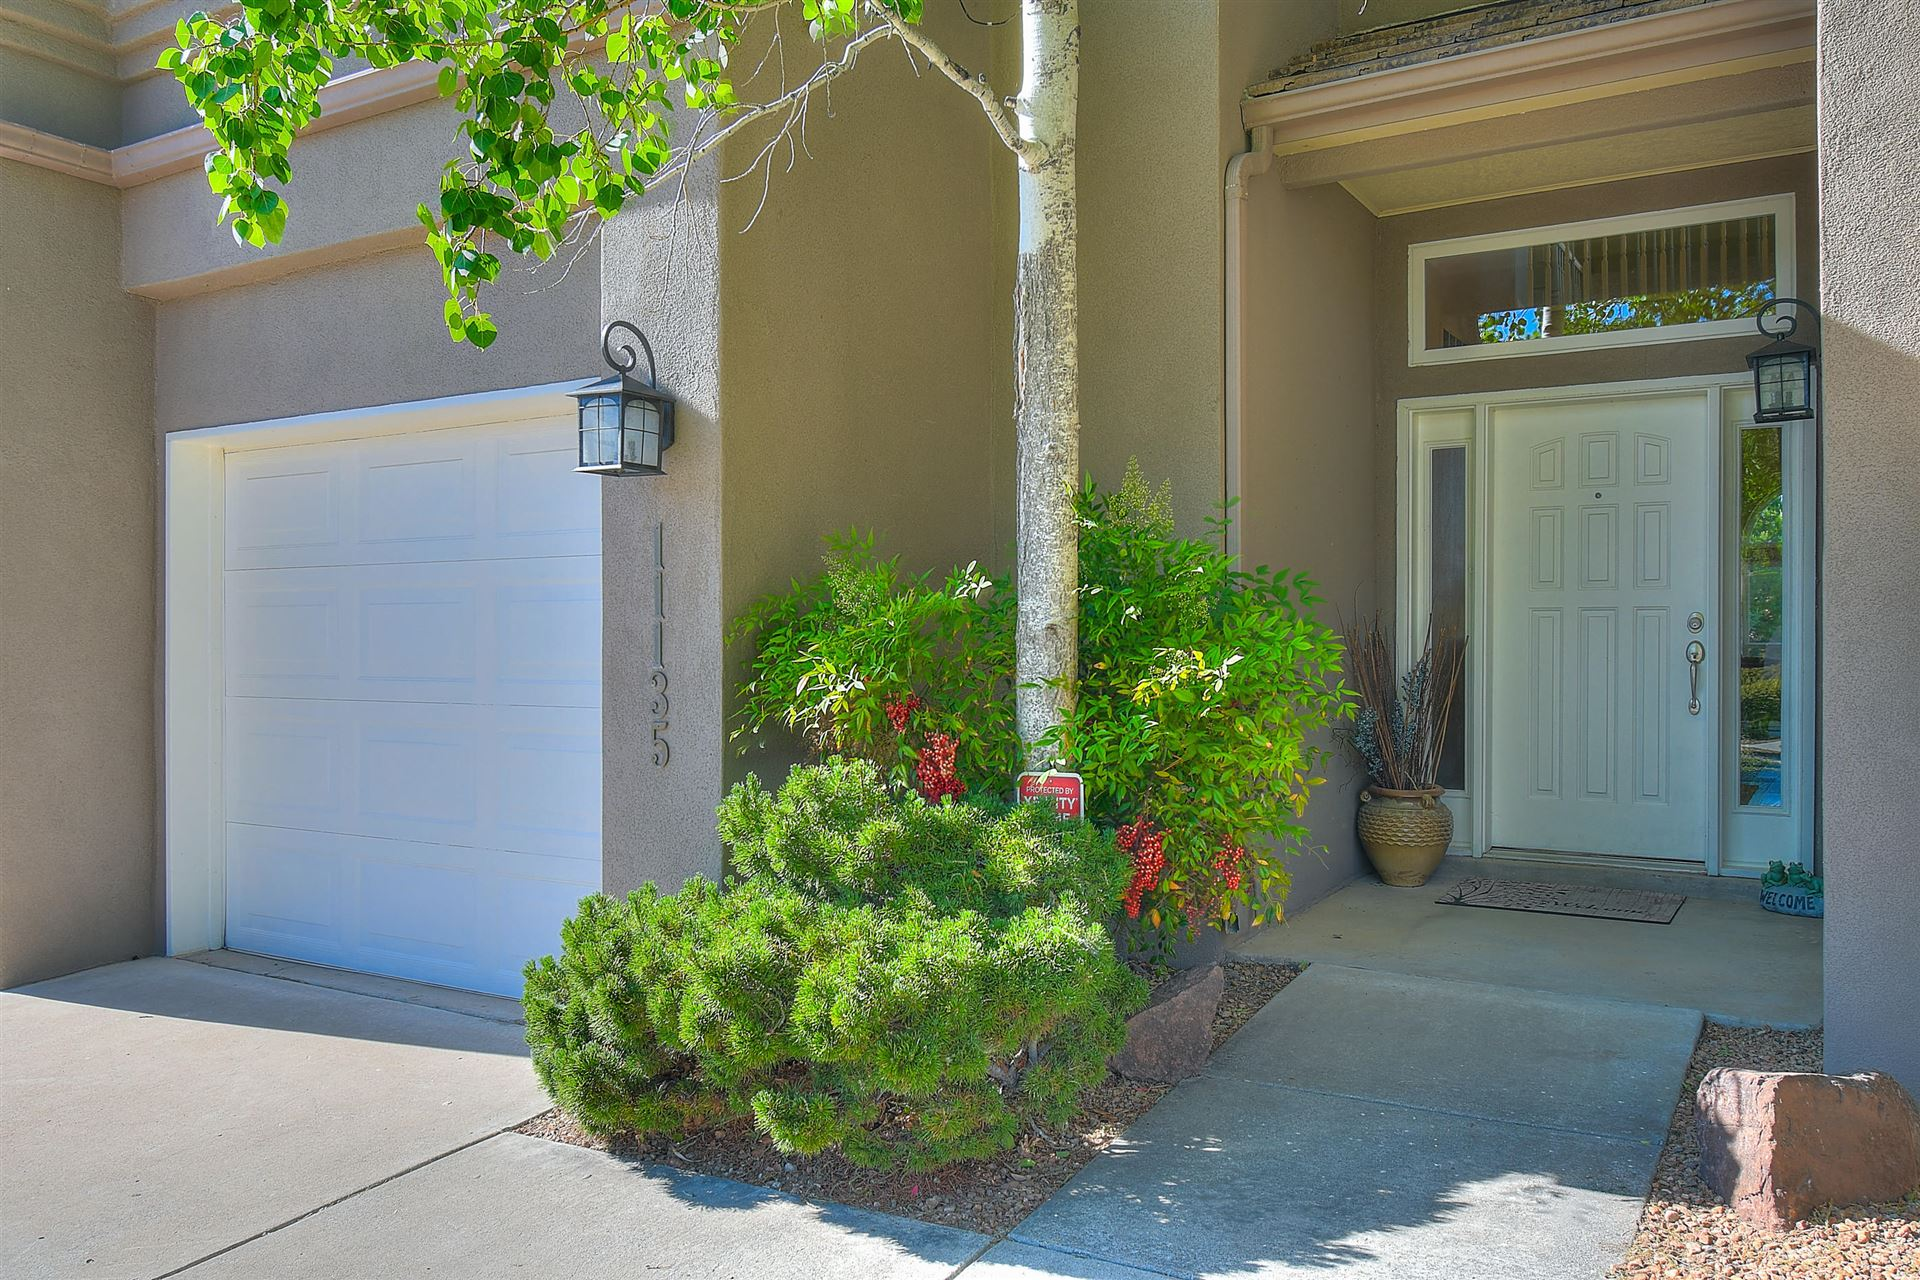 Photo of 11135 SPYGLASS HILL Lane NE, Albuquerque, NM 87111 (MLS # 968261)